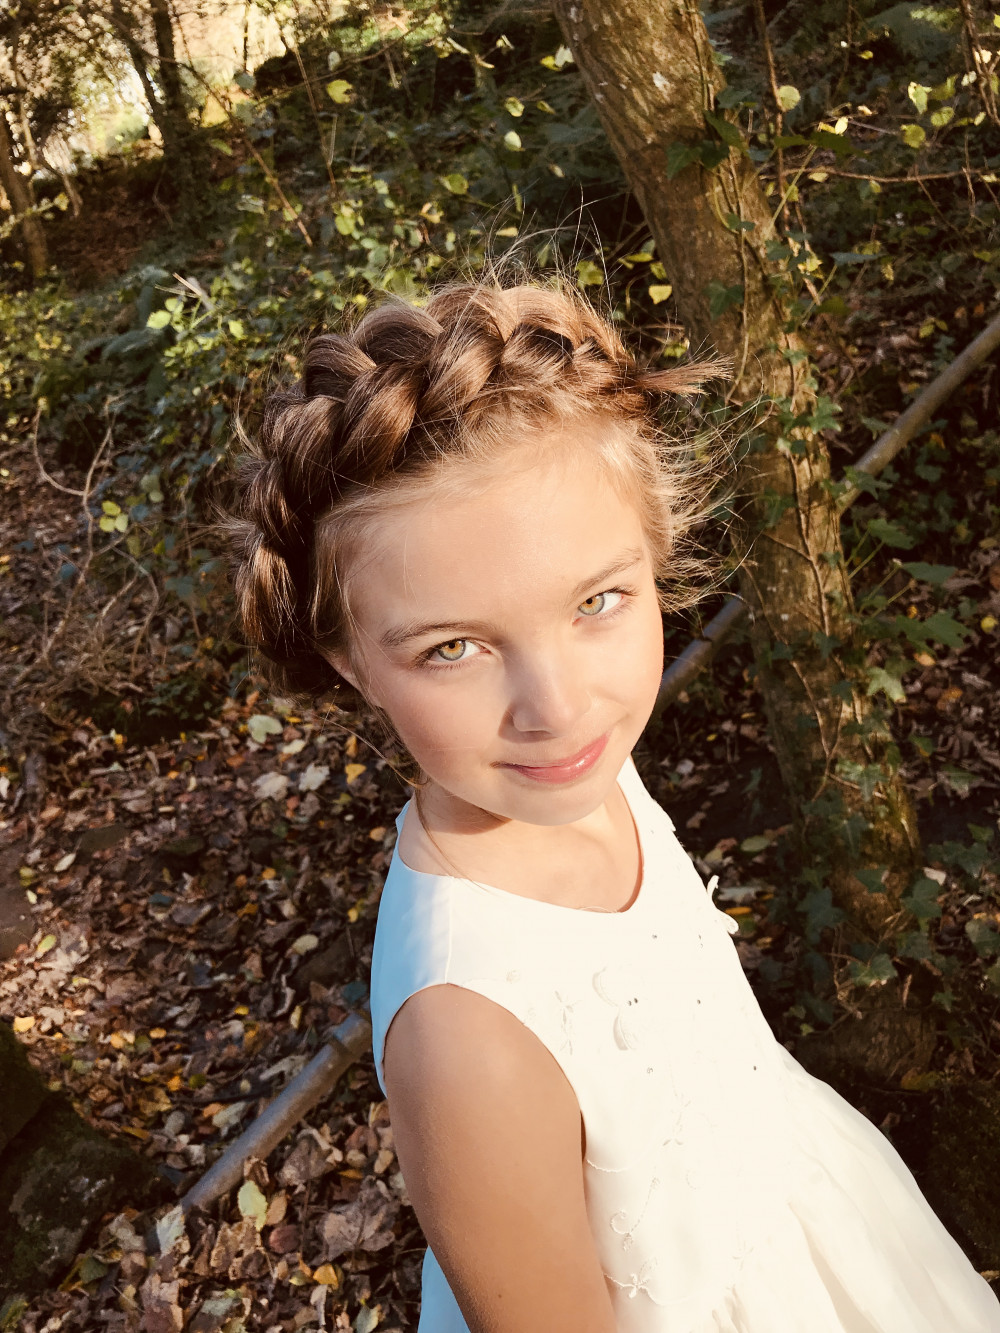 This style using Dutch braid will look beautiful on brides and bridesmaids alike and can be accessorised in so many ways. It can be done on most lengths of hair also - Make Me Bridal Artist: Kimberly Holland Bridal Hair & Makeup Artist. Photography by: Kimberly Holland. #boho #bridalhair #braid #bridesmaidhair #bohobride #updo #plaitupdo #braidedupdo #flowergirl